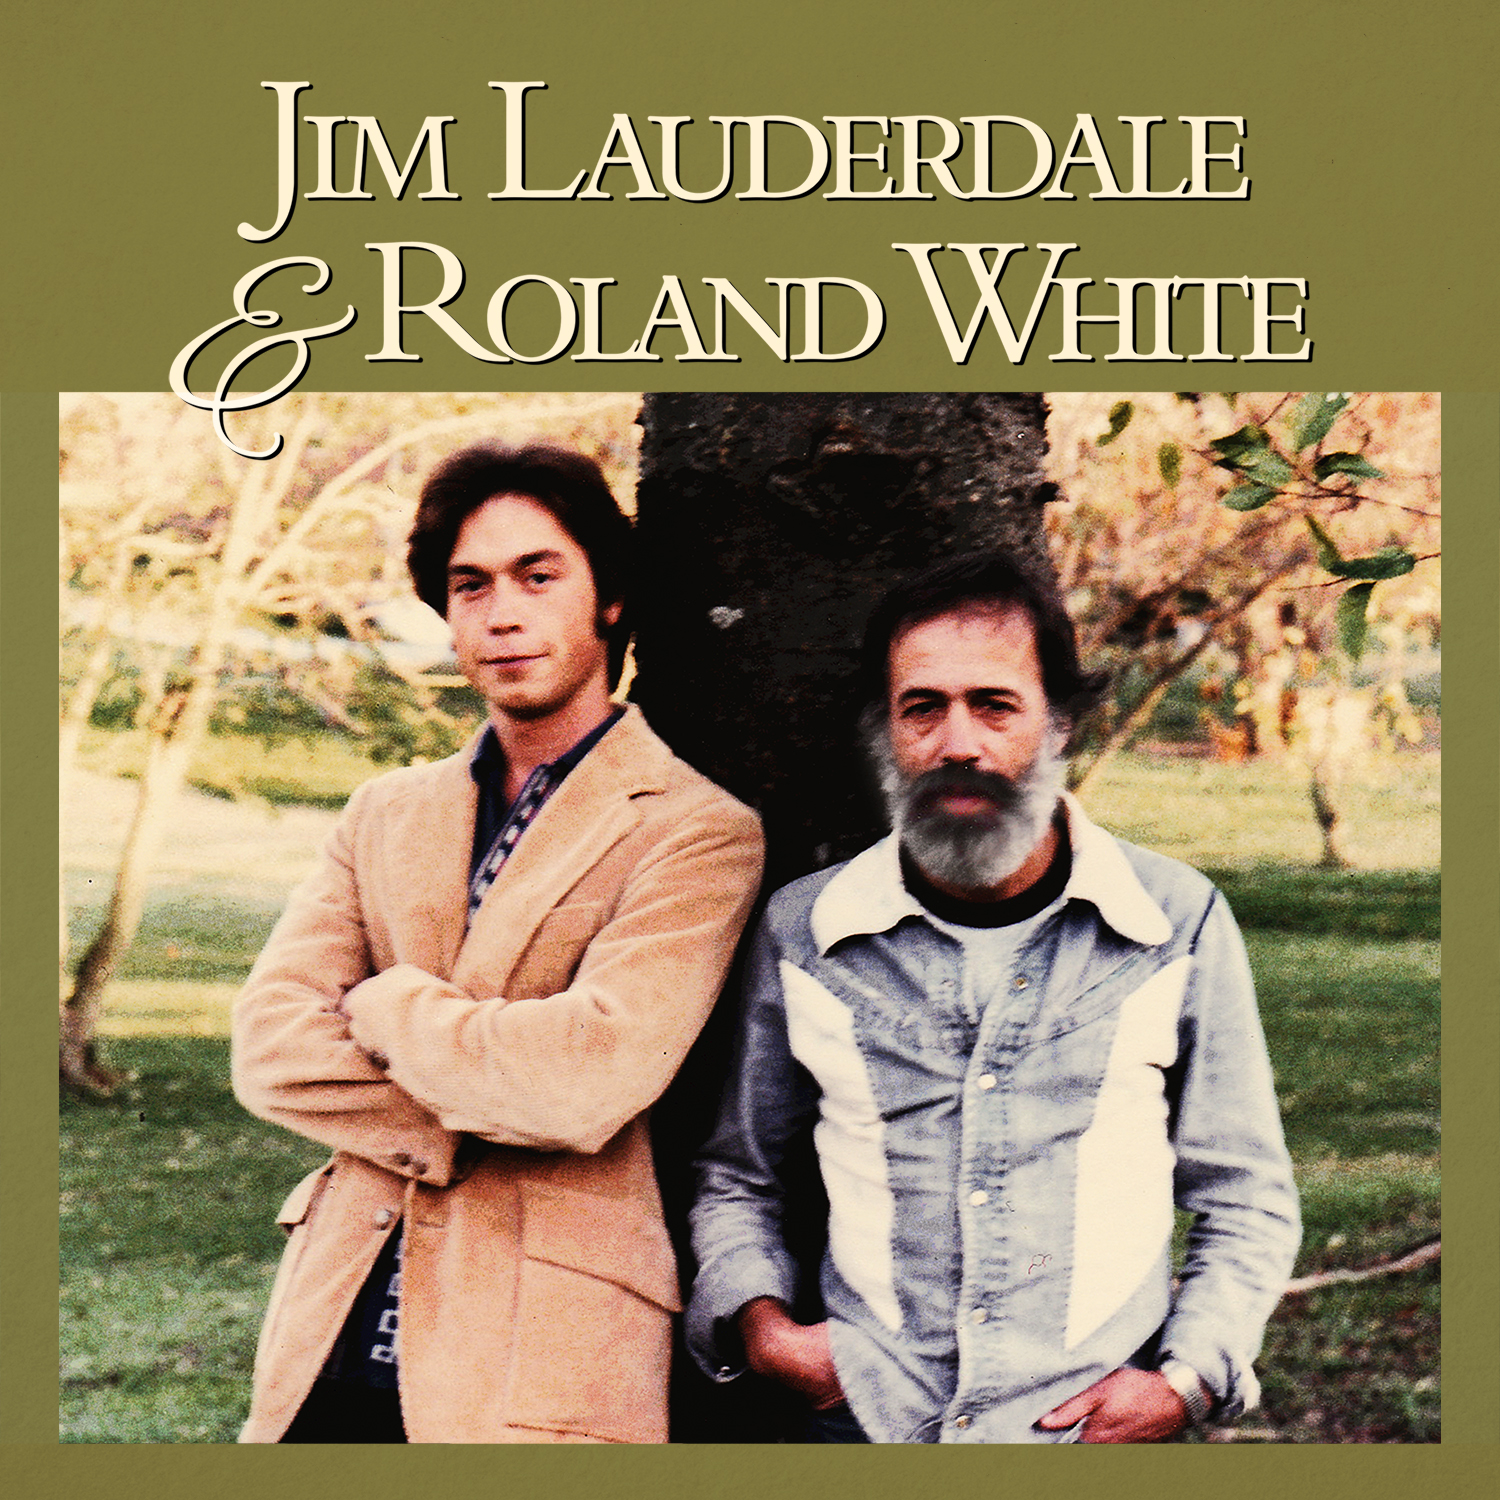 Lost for 39 Years, Jim Lauderdale's Record with Roland White Resurfaces